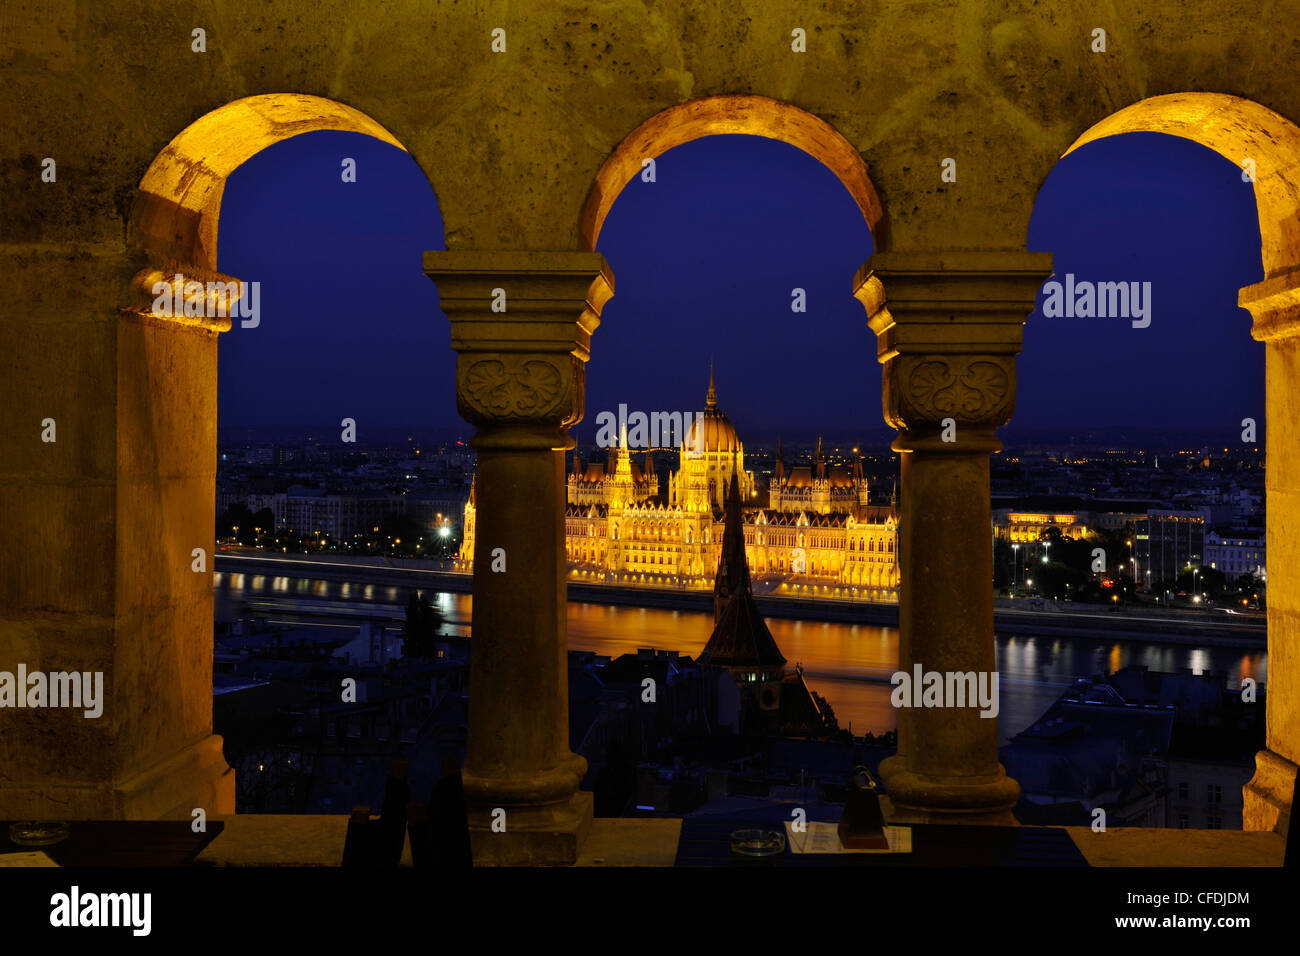 View from the Fisherman's Bastion onto the House of Parliament at Danube river at night, Budapest, Hungary, Europe Stock Photo